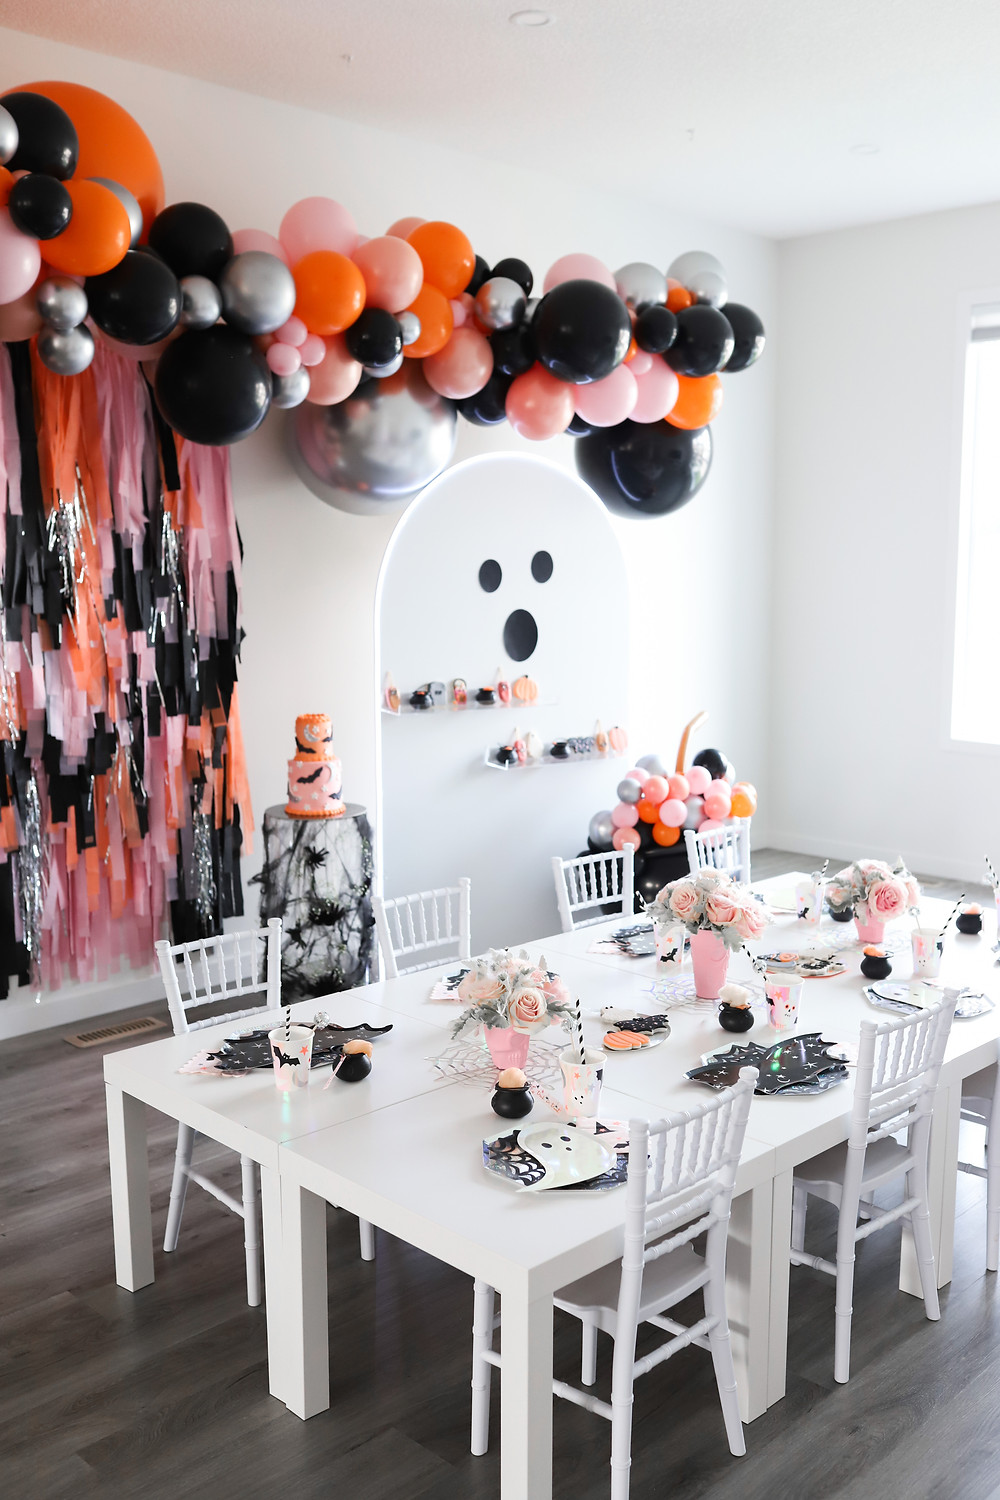 A giant arch of orange, black, pink, metallic silver balloons and streamers hanging on the wall in front of a kids white table decorated with pink roses, a bat themed cake, kids cups, tiny pumpkins, cauldrons, ghosts, and scary party aesthetics at a Halloween party.